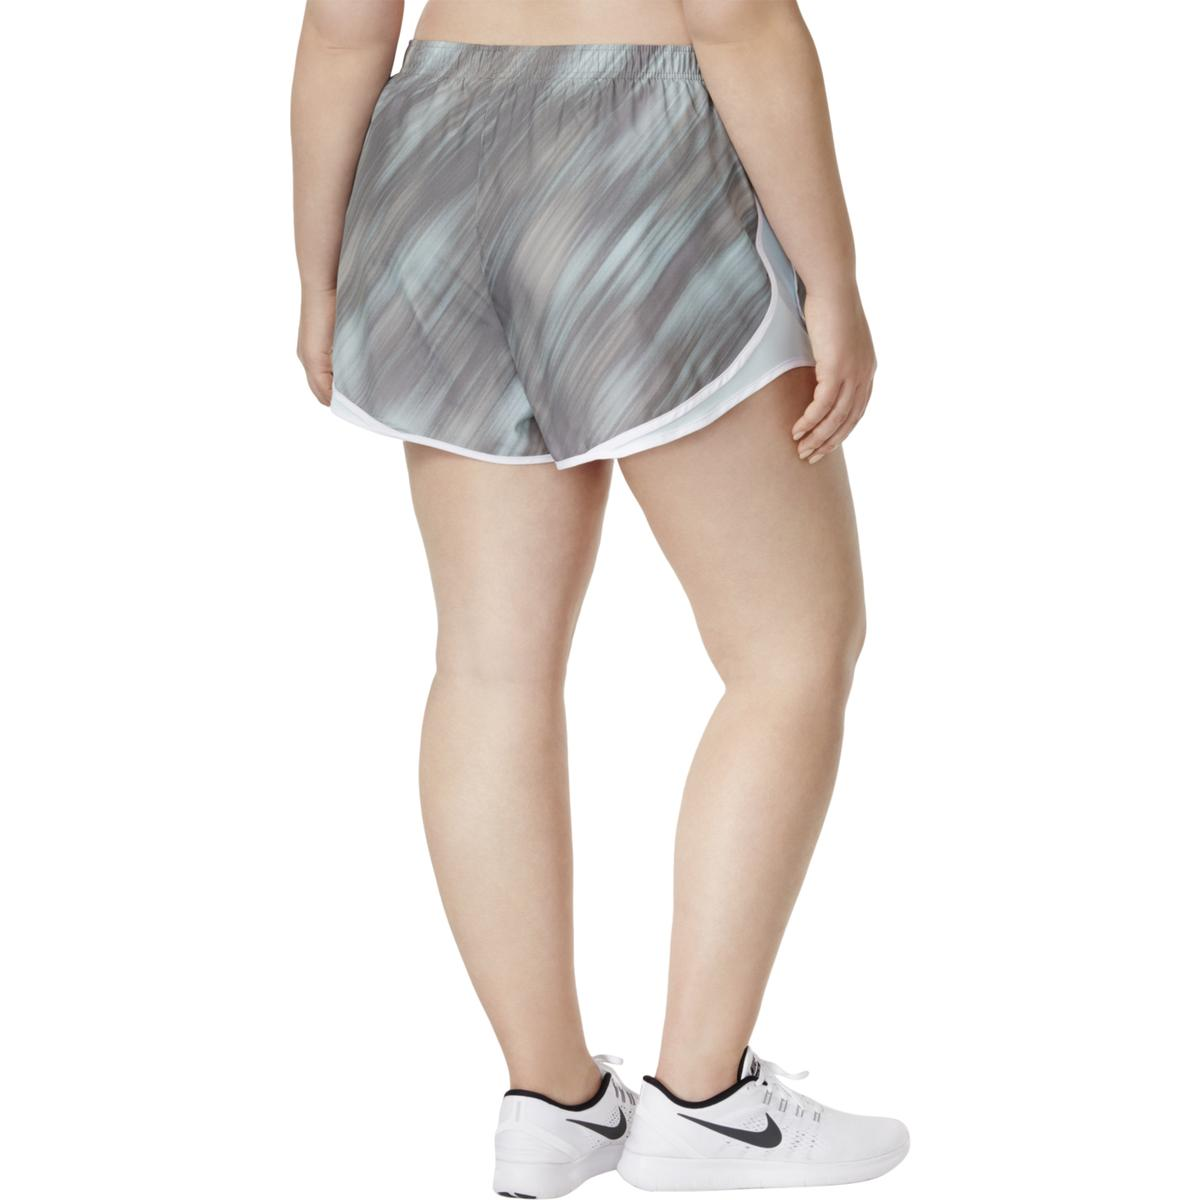 b789b993977 Nike Womens Plus Size Workout Dri-Fit Tempo Track Athletic Running ...